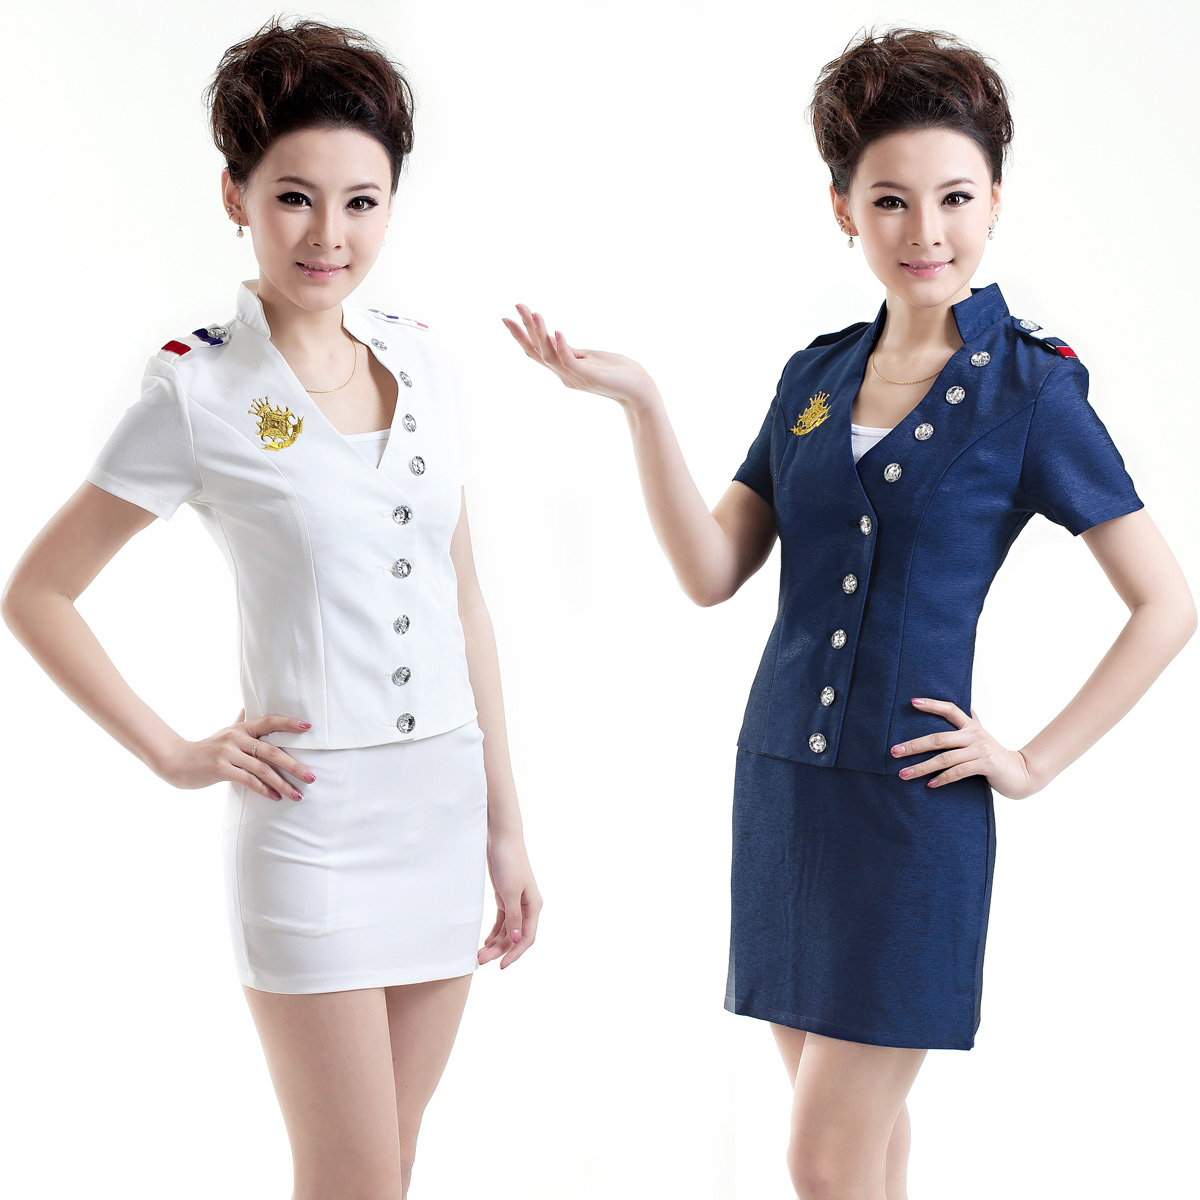 Hotel uniforms create a professional environment for Spa employee uniform